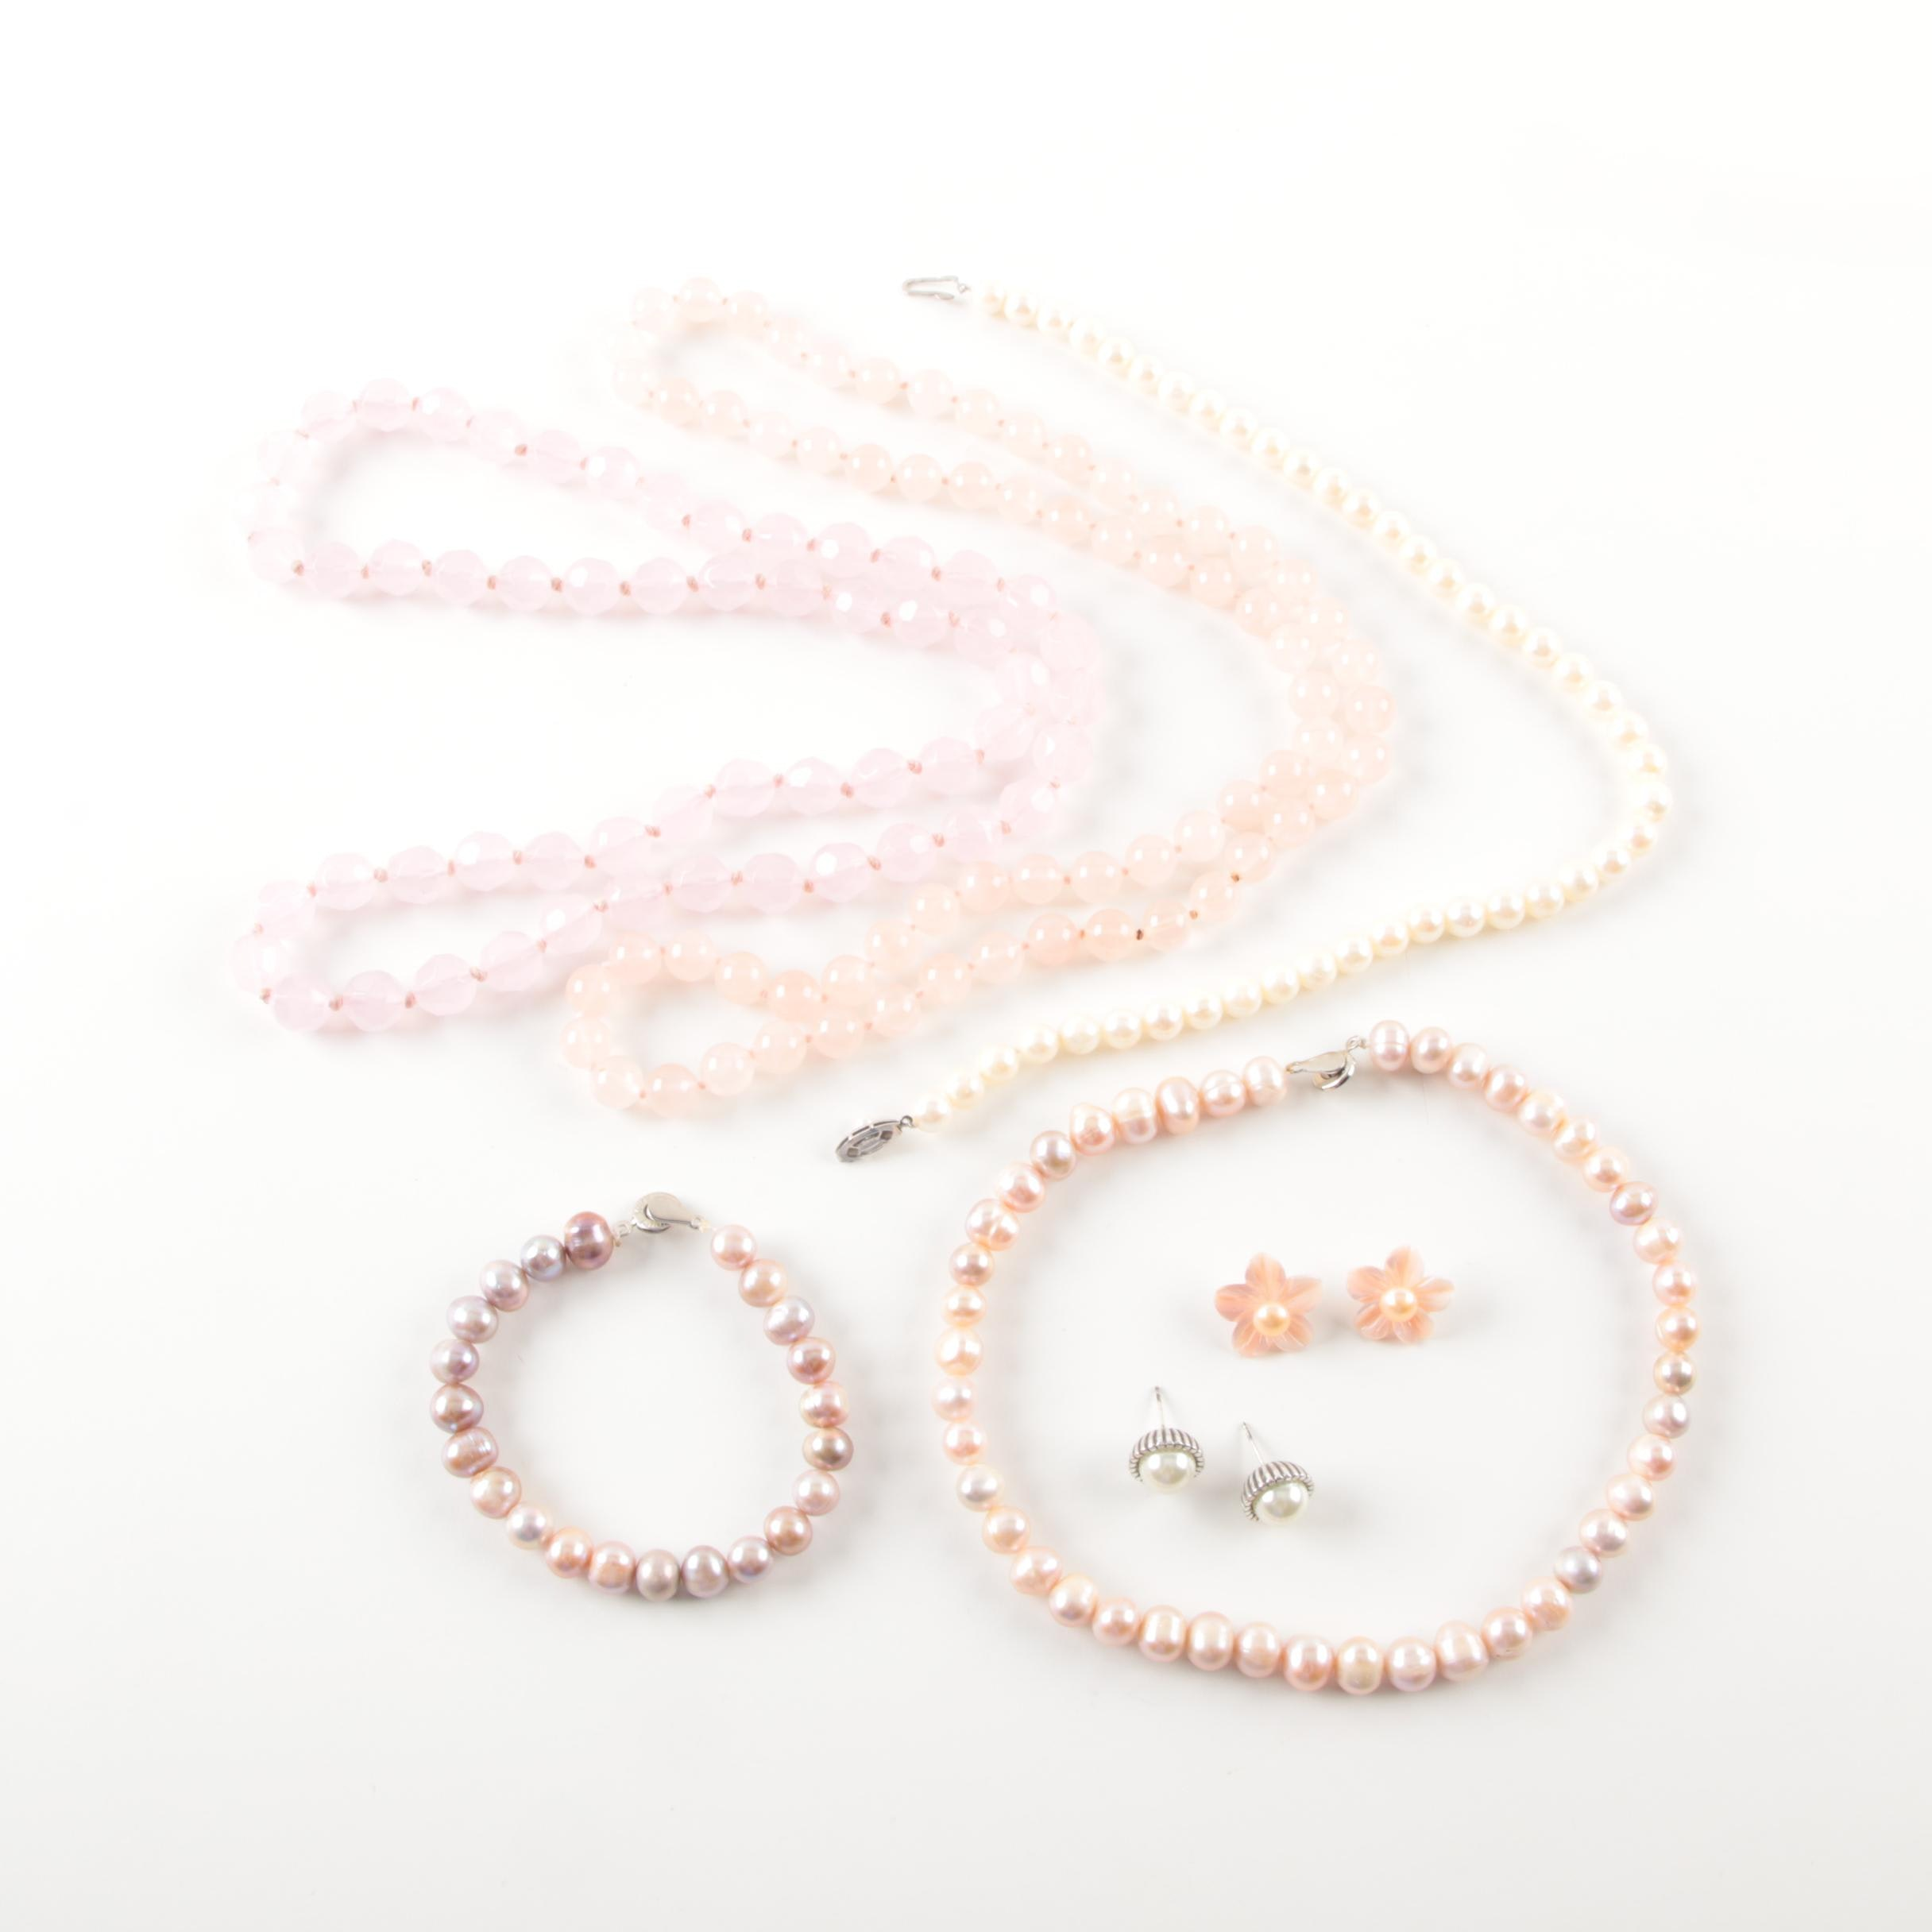 Cultured Pearl Teng Yue Set with Rose Quartz Jewelry and Sterling Silver